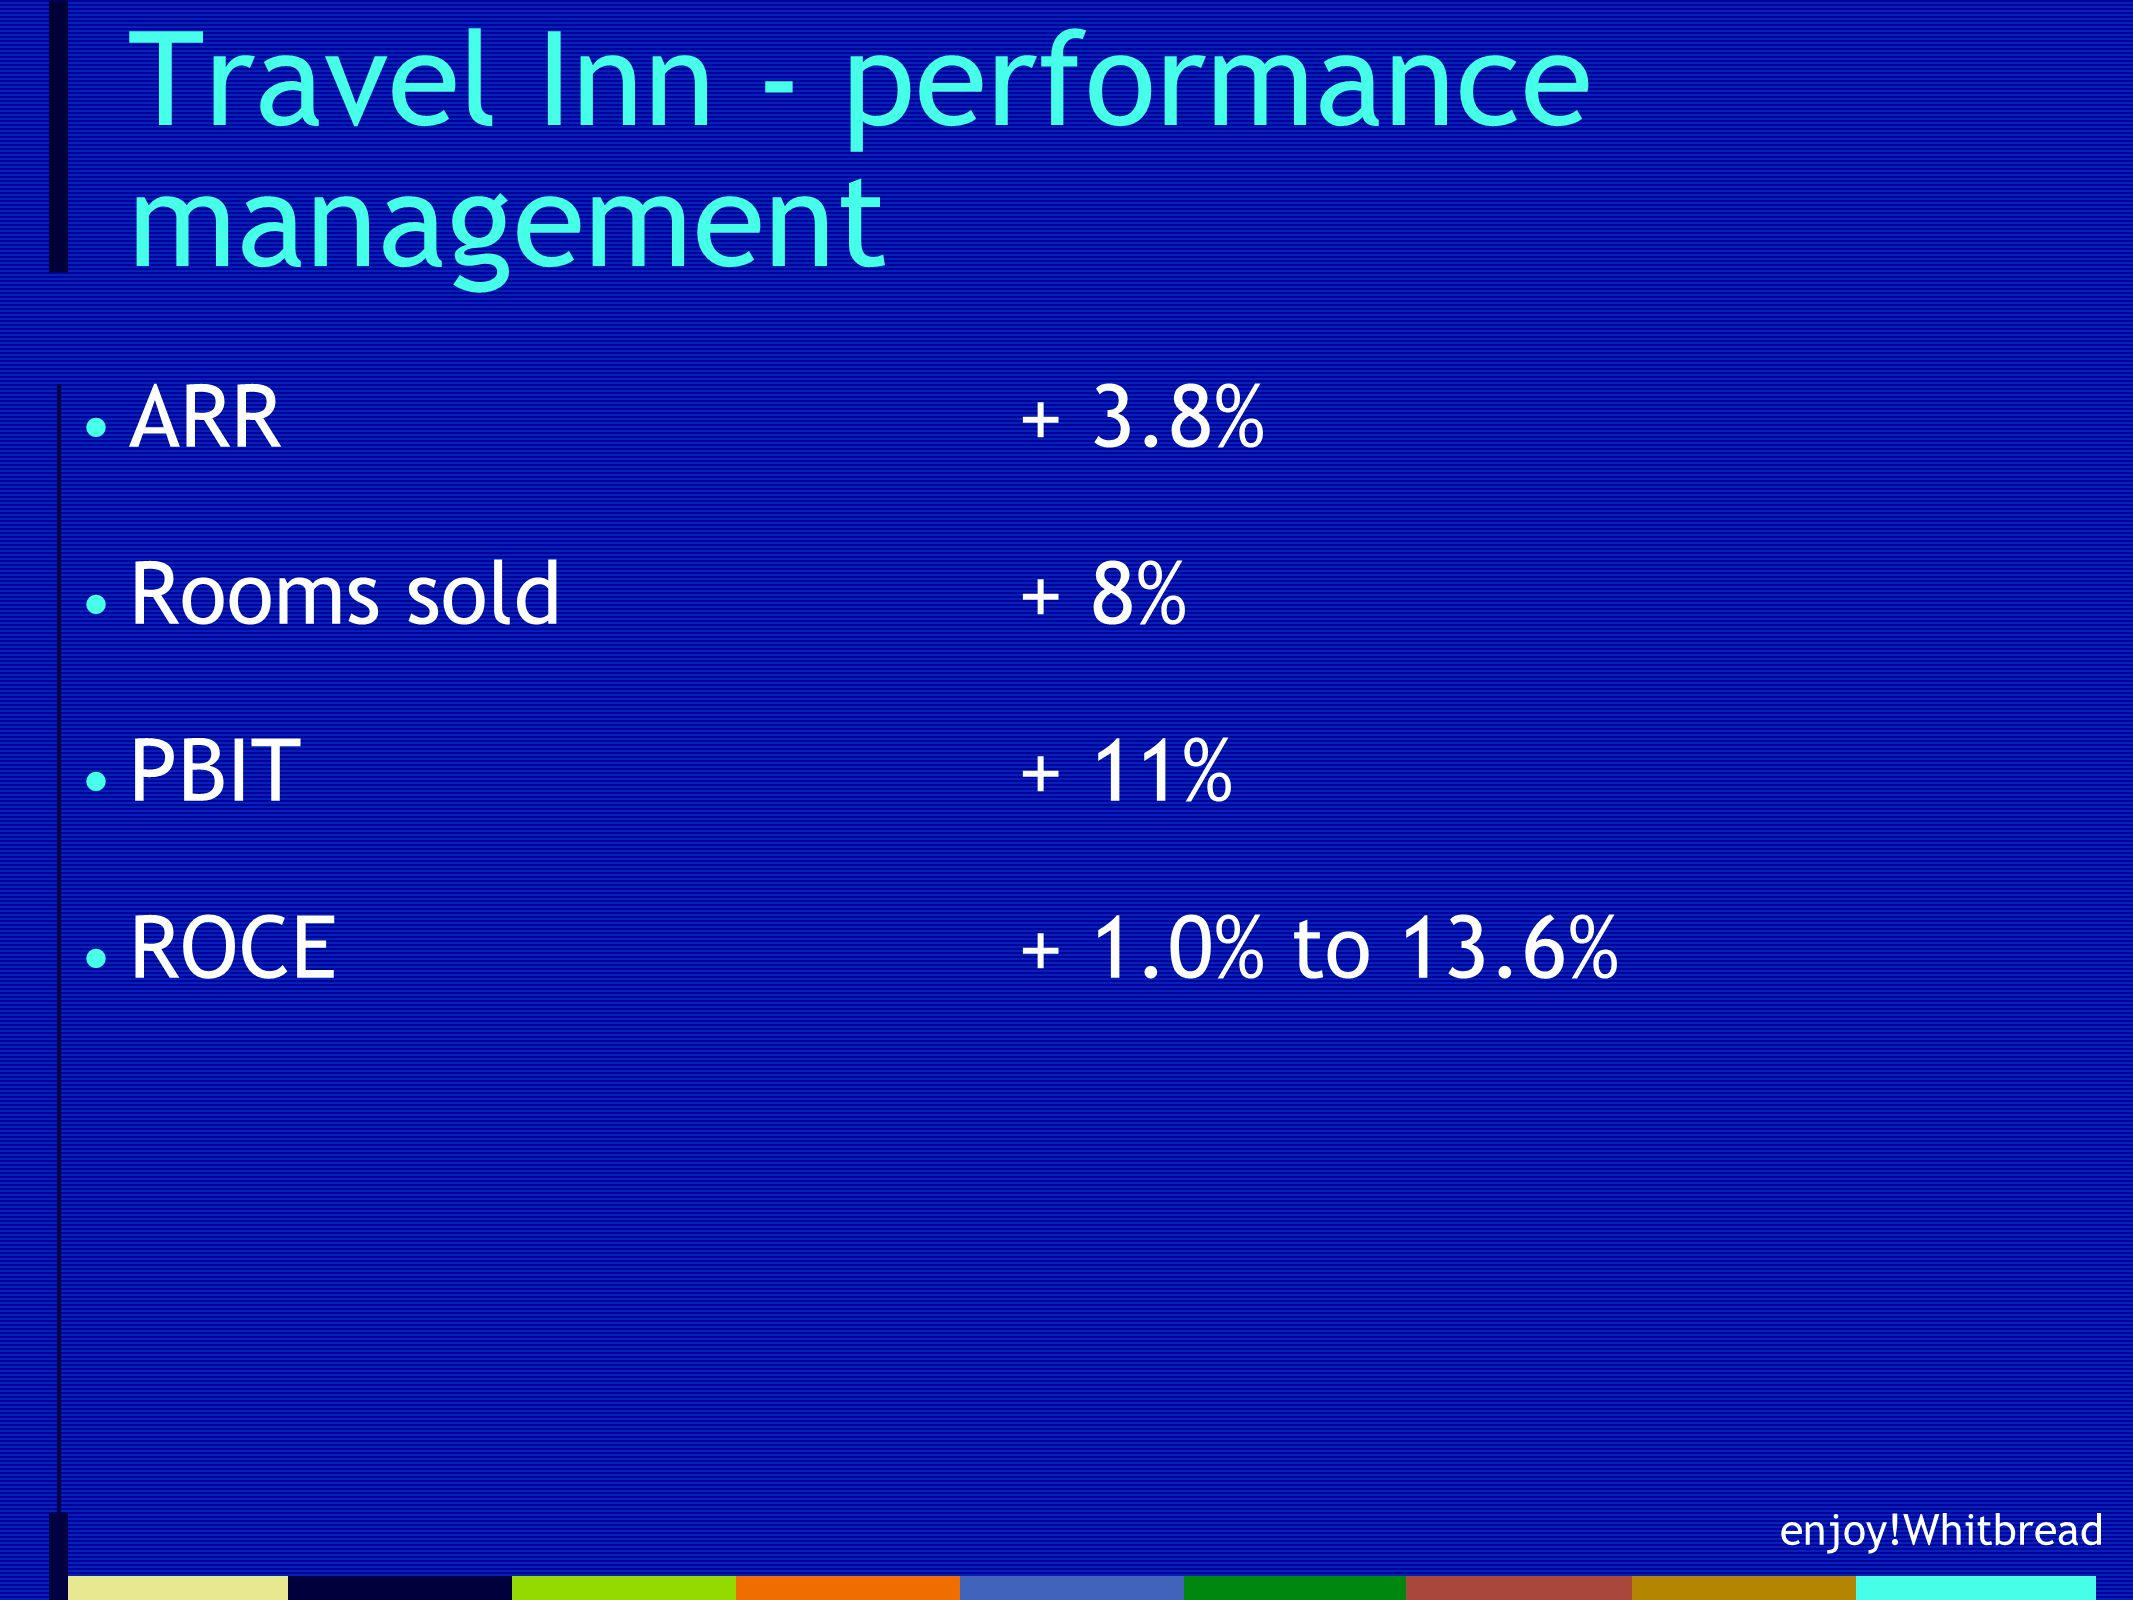 enjoy!Whitbread Travel Inn - performance management ARR+ 3.8% Rooms sold+ 8% PBIT+ 11% ROCE + 1.0% to 13.6%